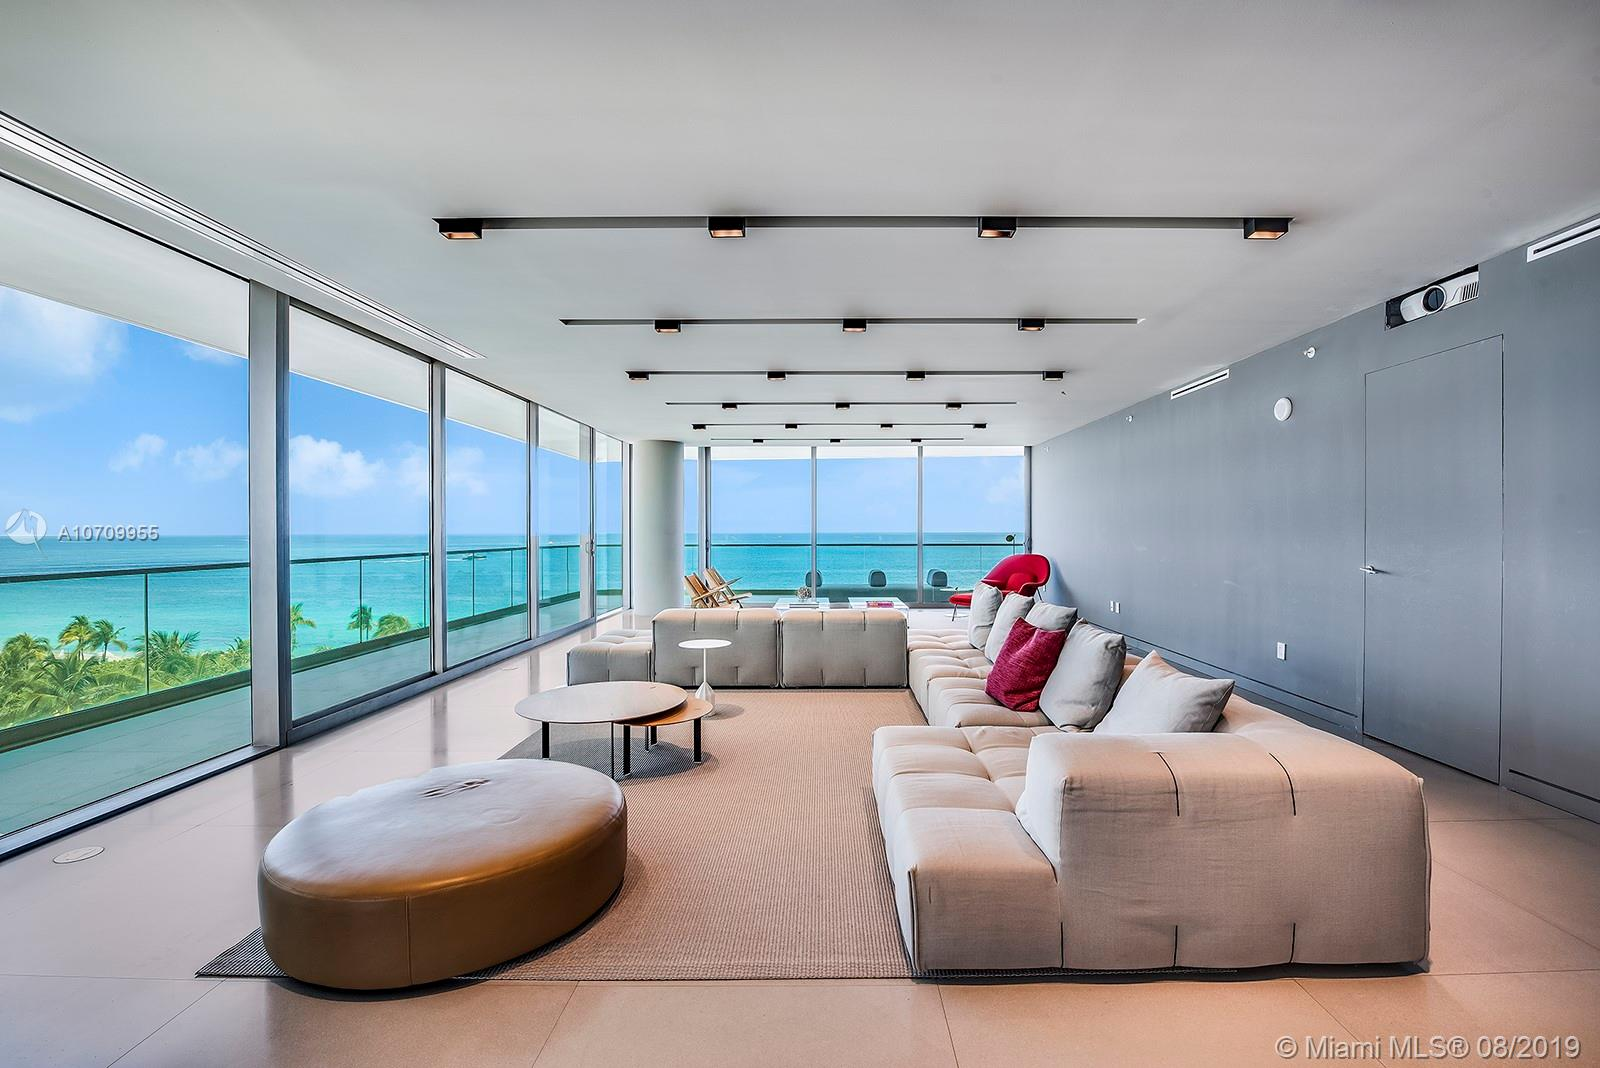 10203 Collins Ave, Unit #701 Luxury Real Estate